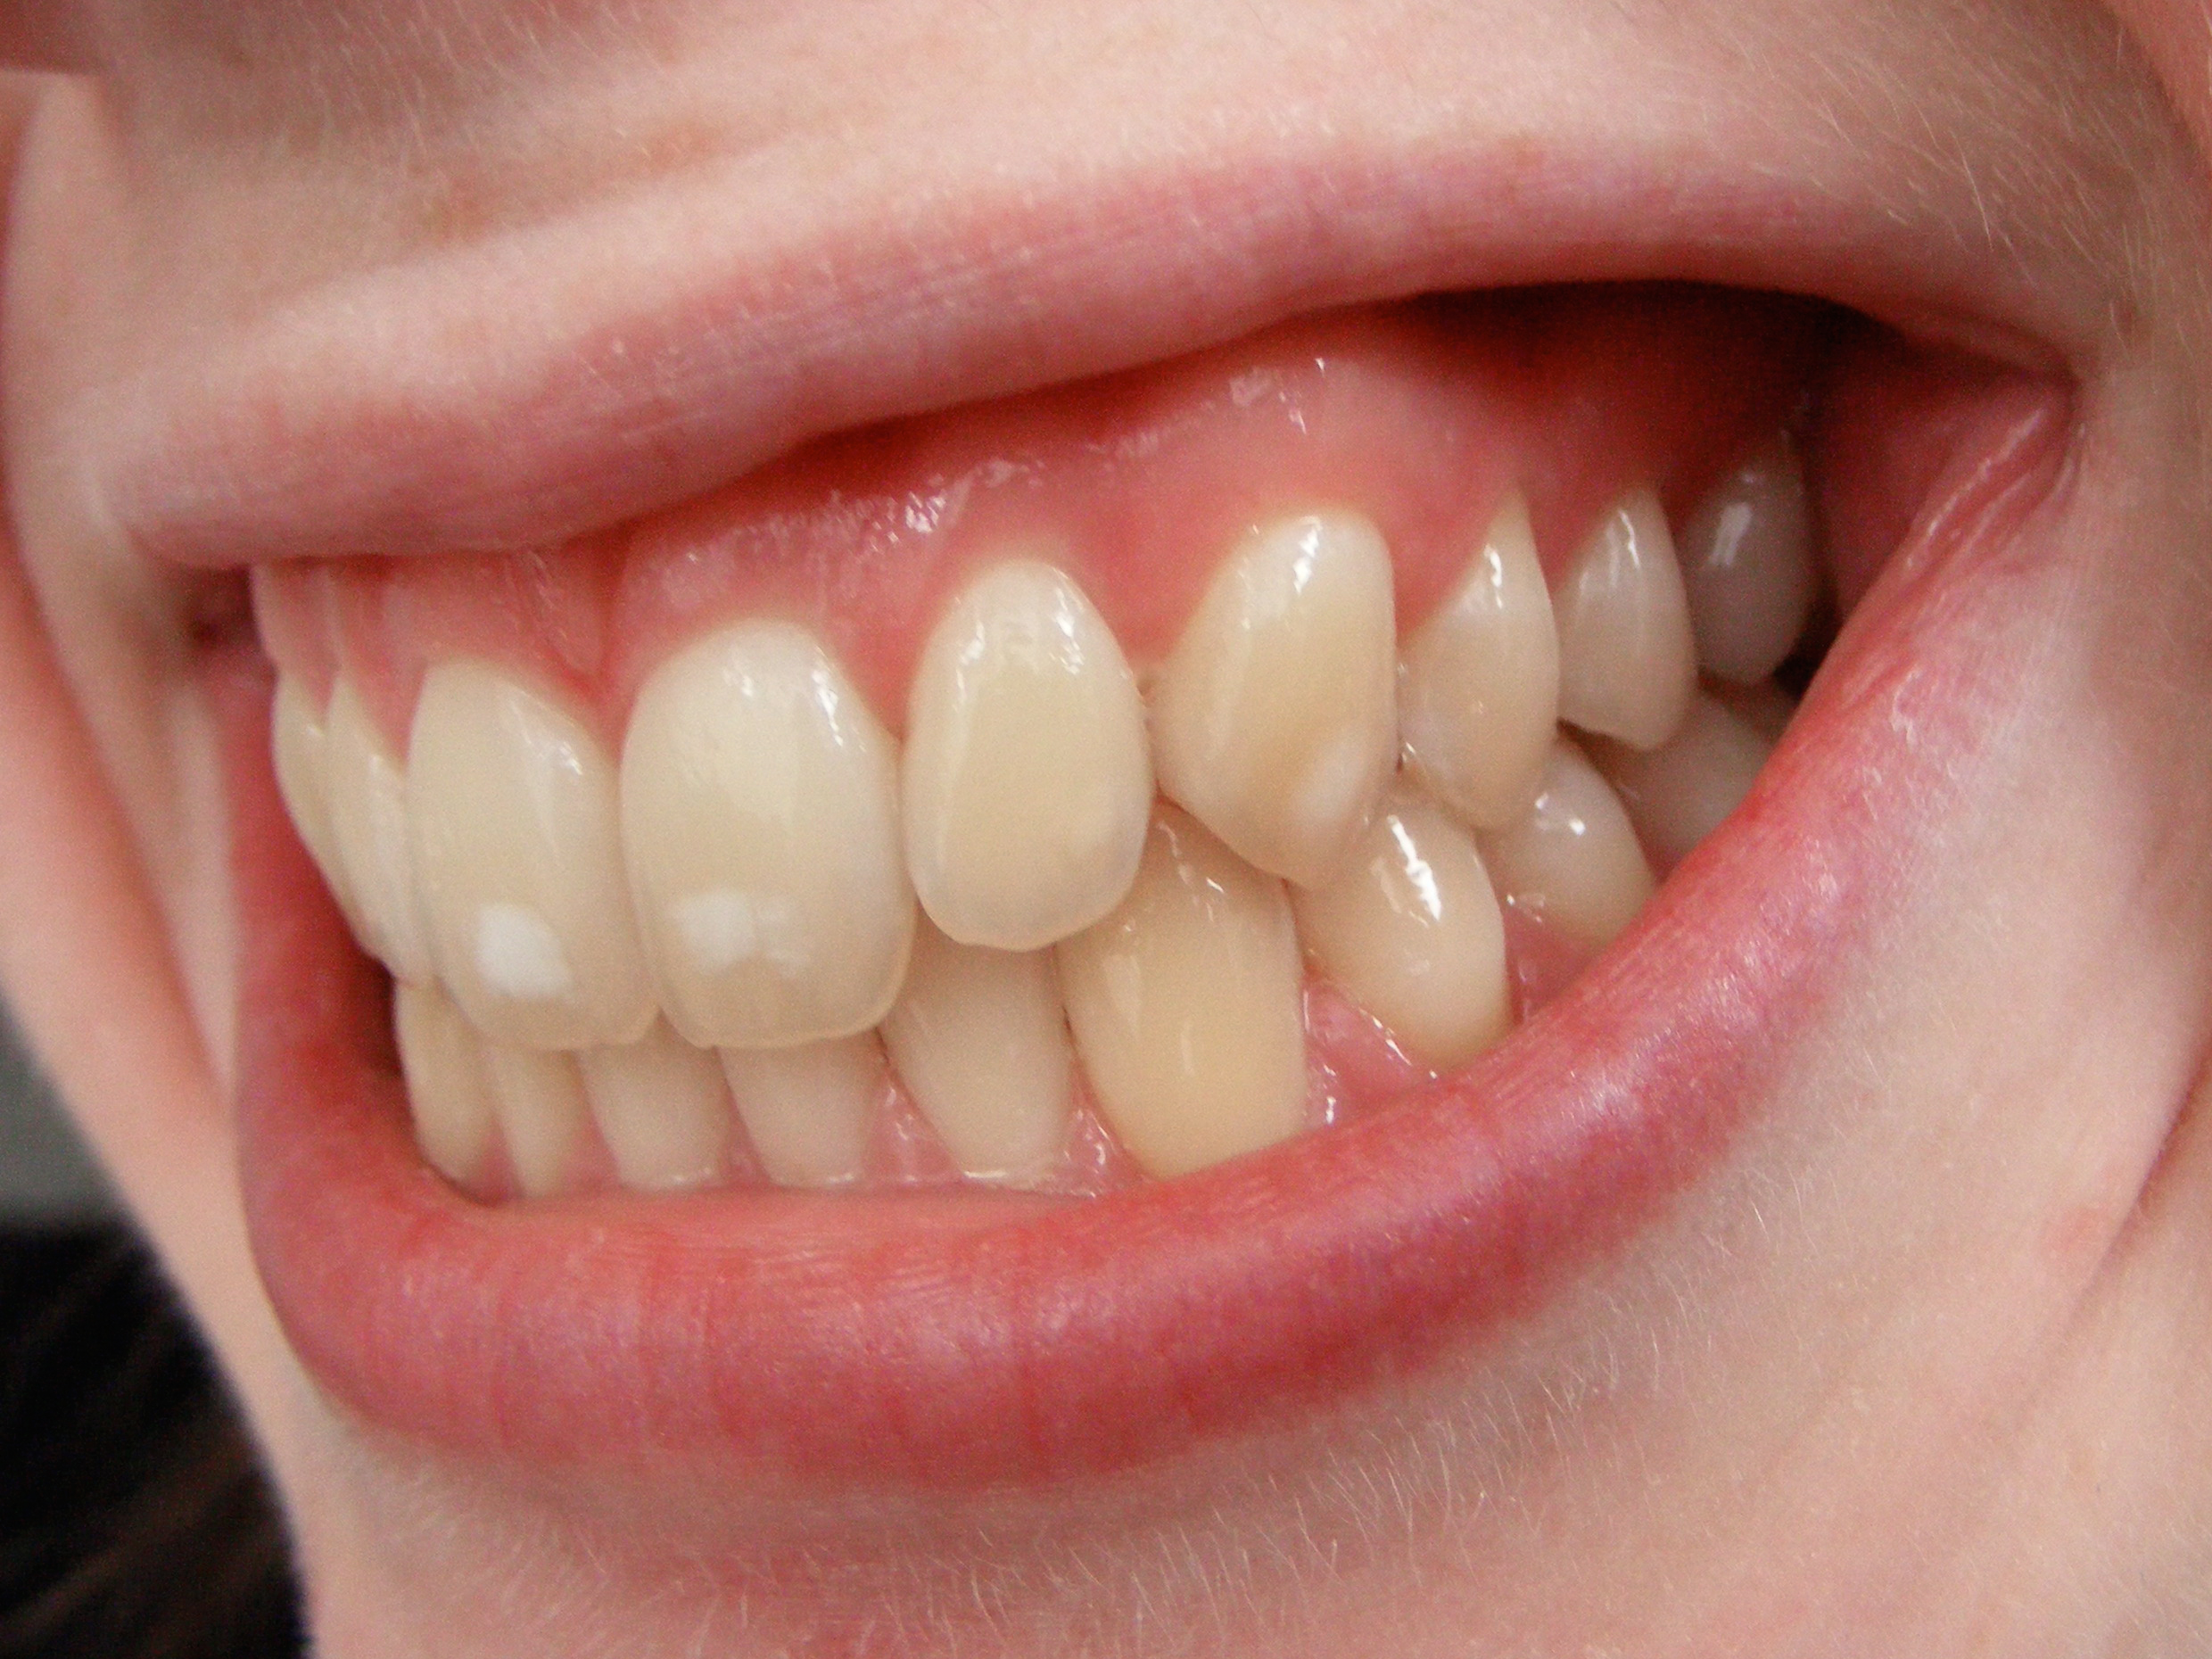 Natural Treatment For White Spots On Teeth